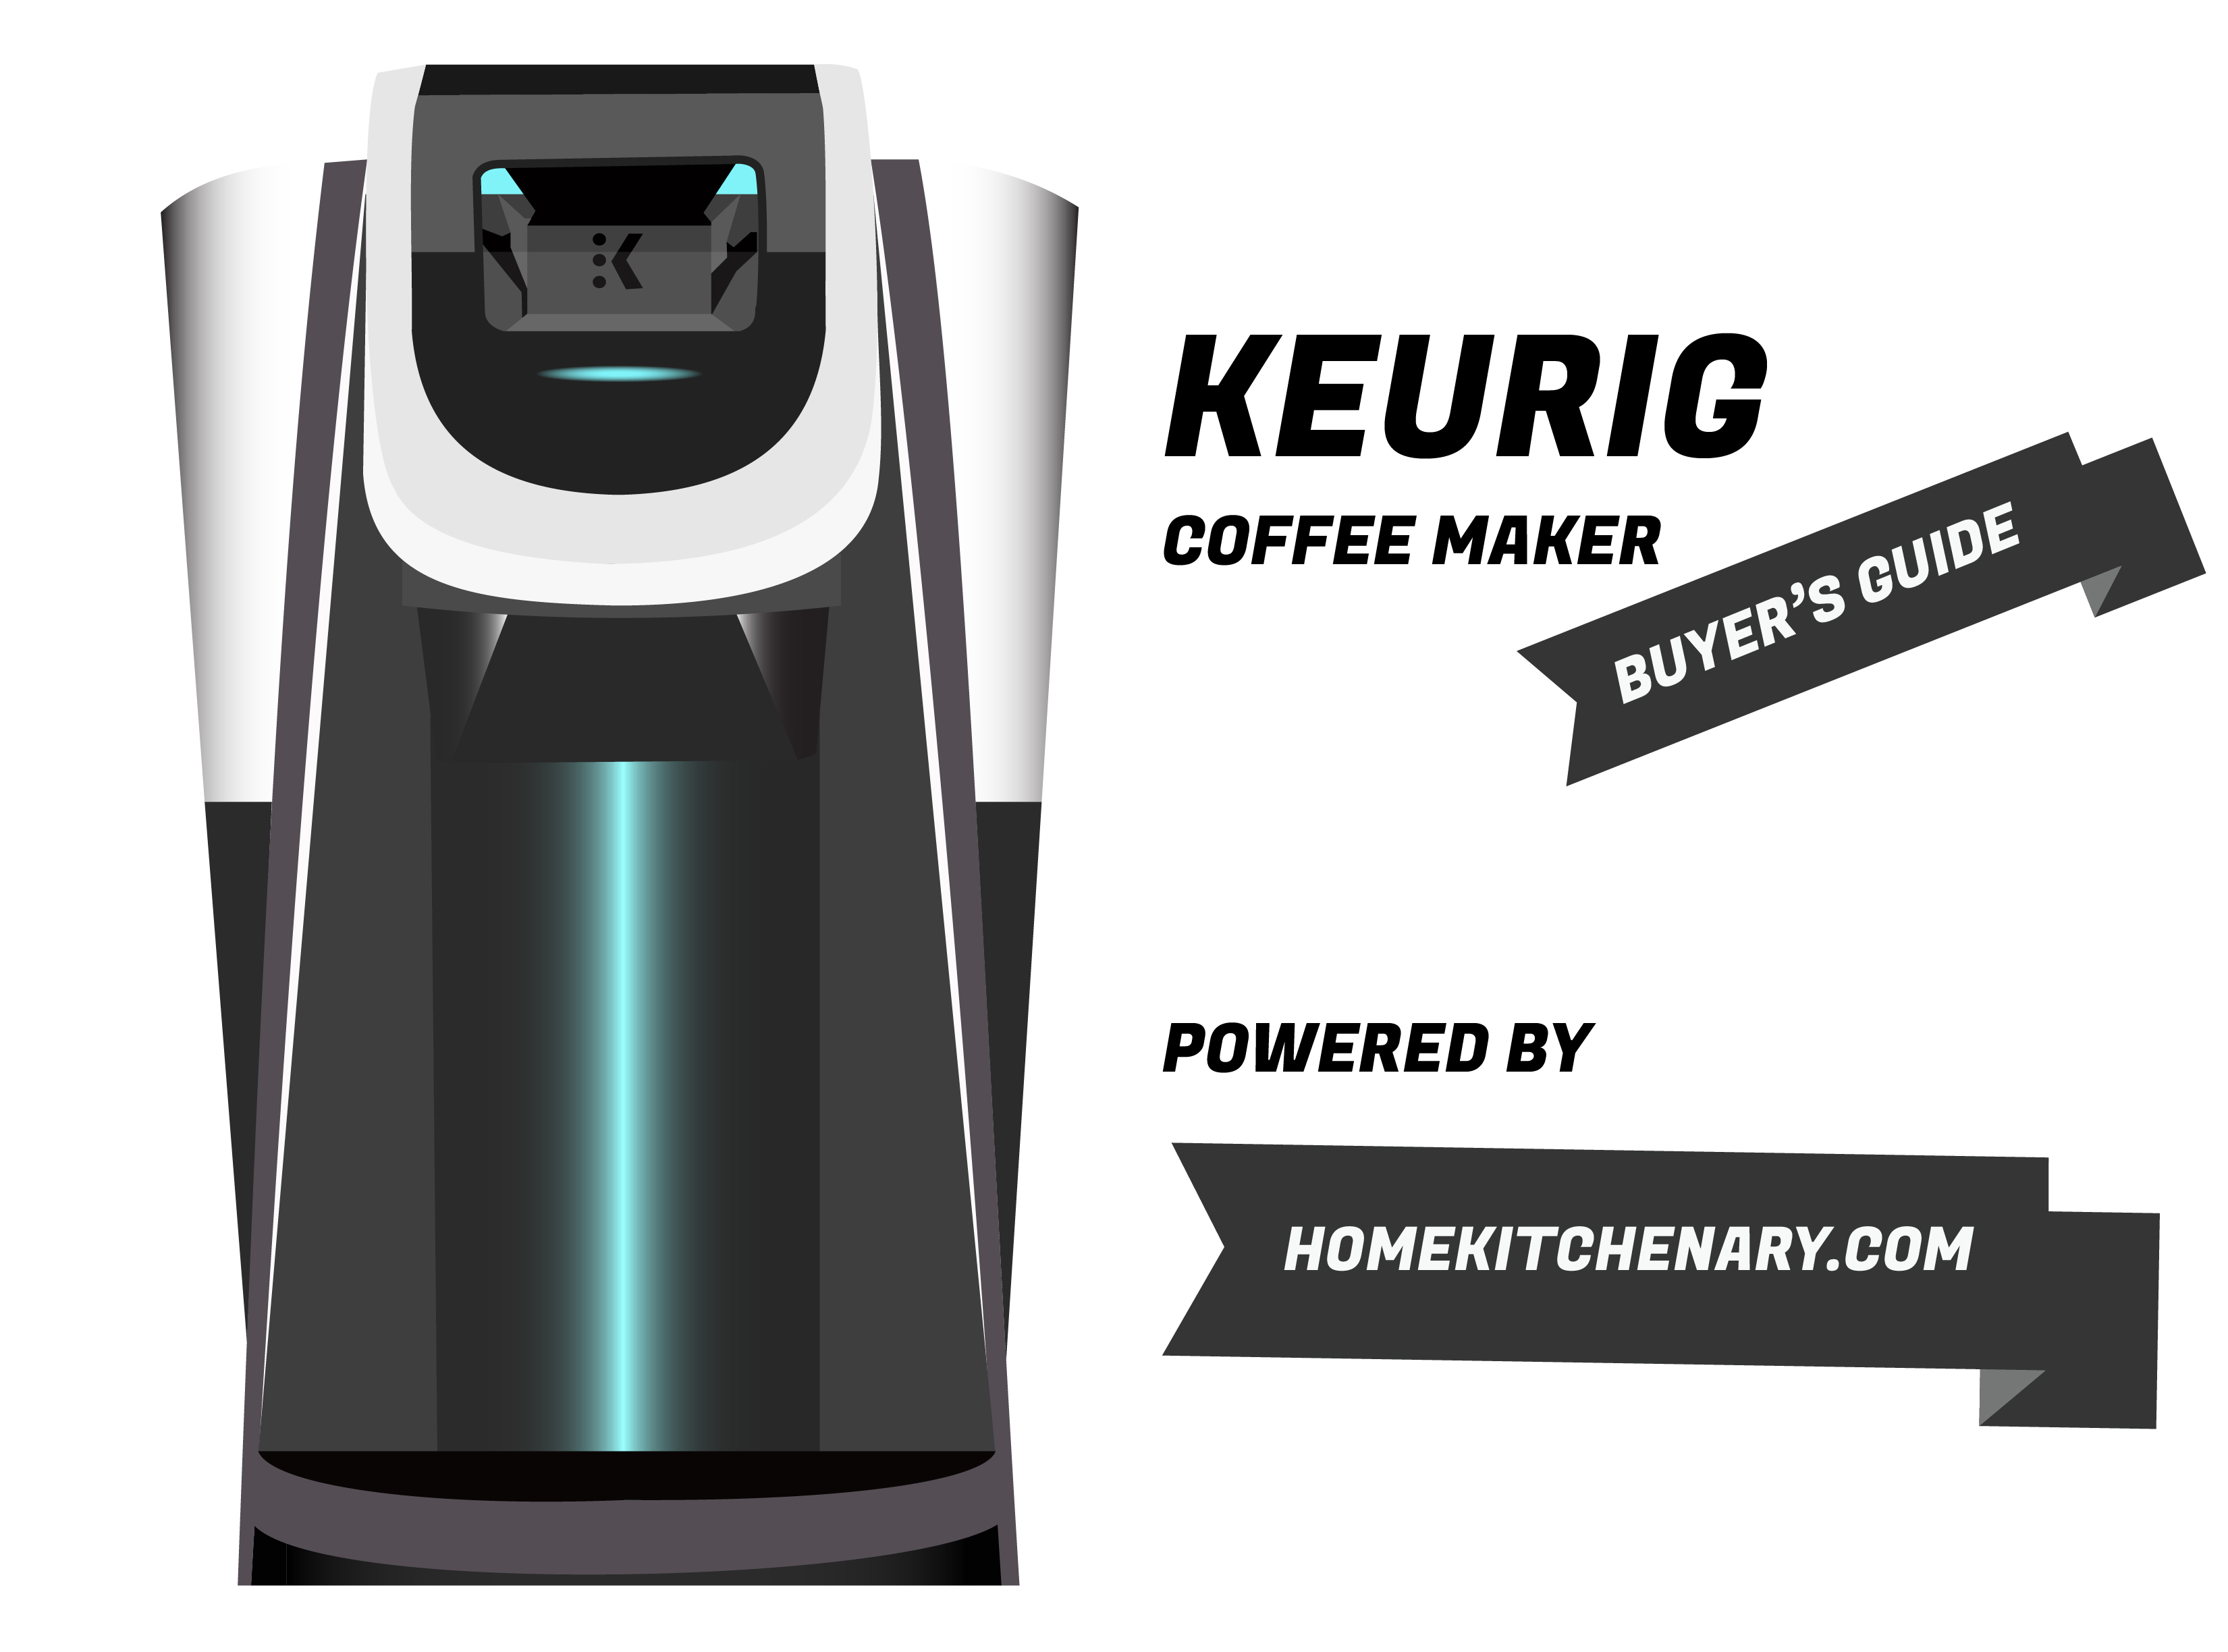 Keurig Coffee Maker Buyers Guide Powered by Homekitchenary